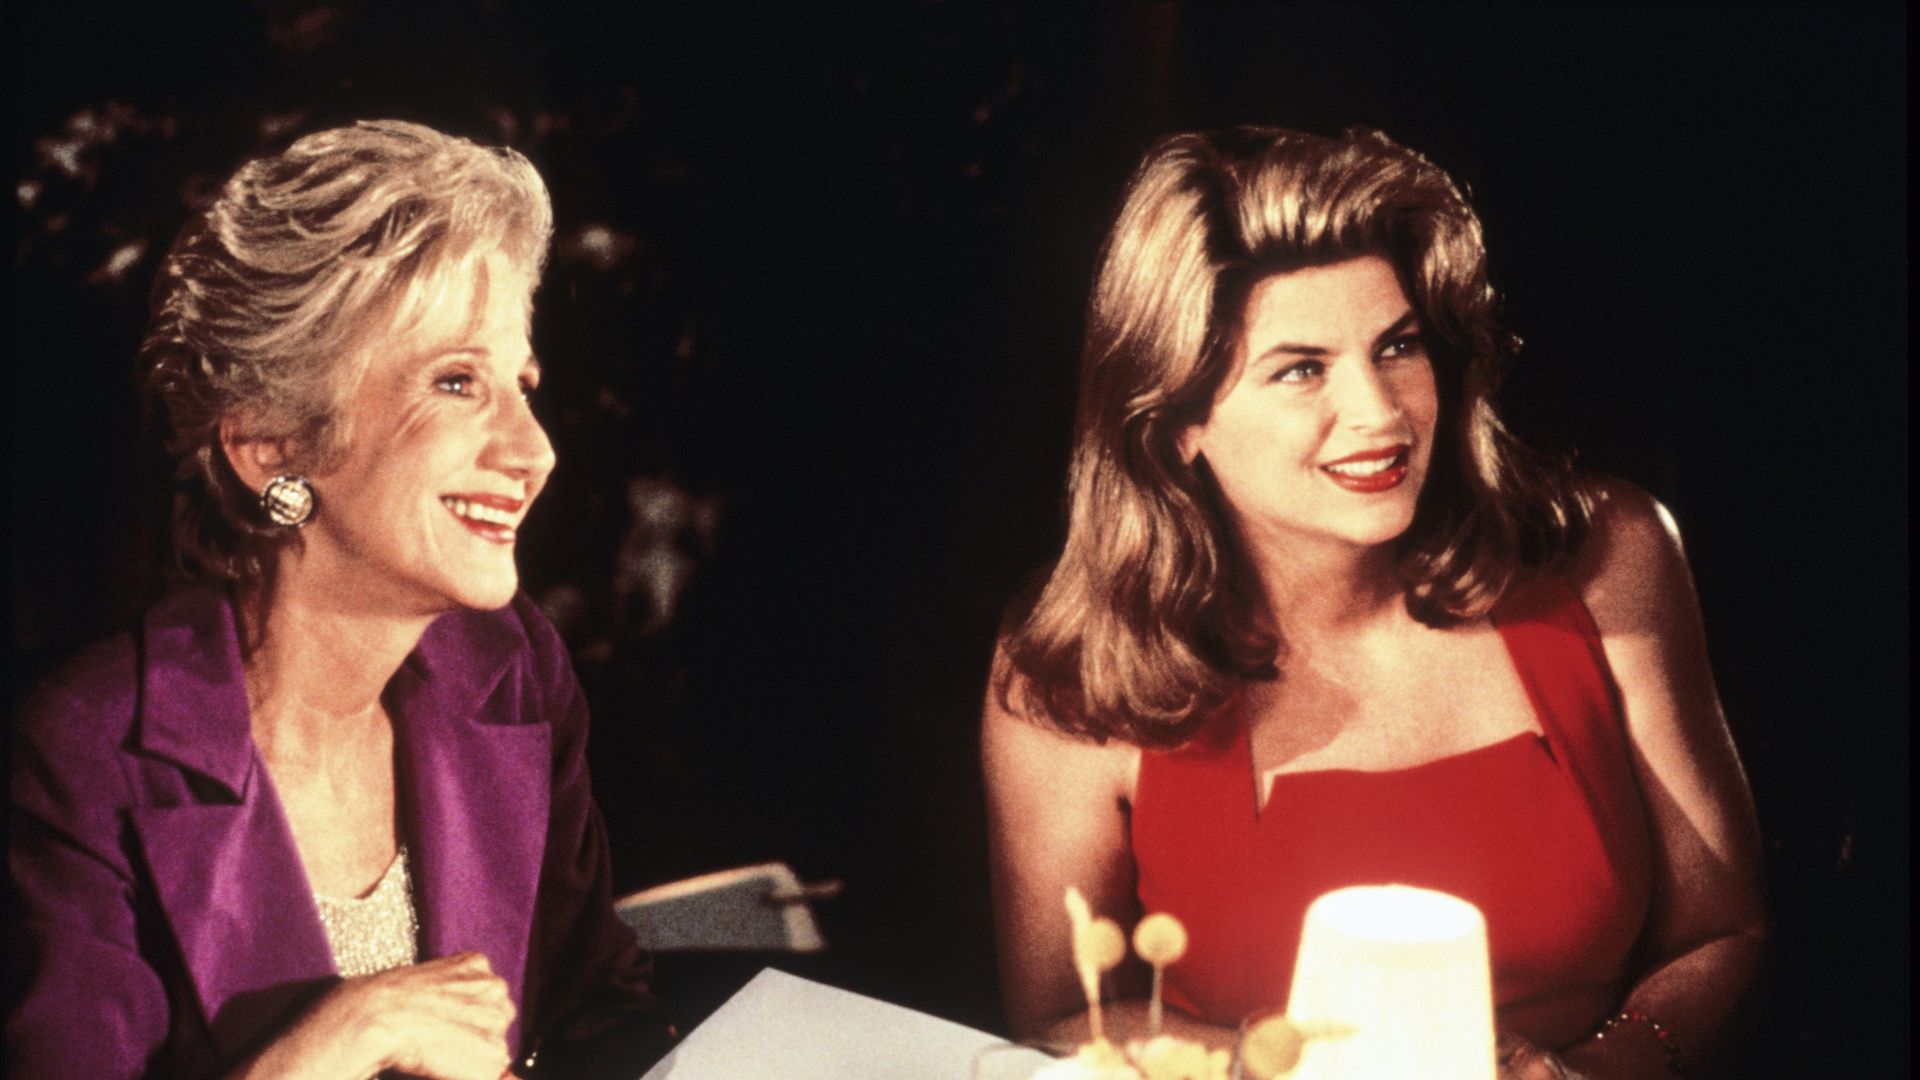 LOOK WHO'S TALKING NOW, form left: Olympia Dukakis, Kirstie Alley, 1993.